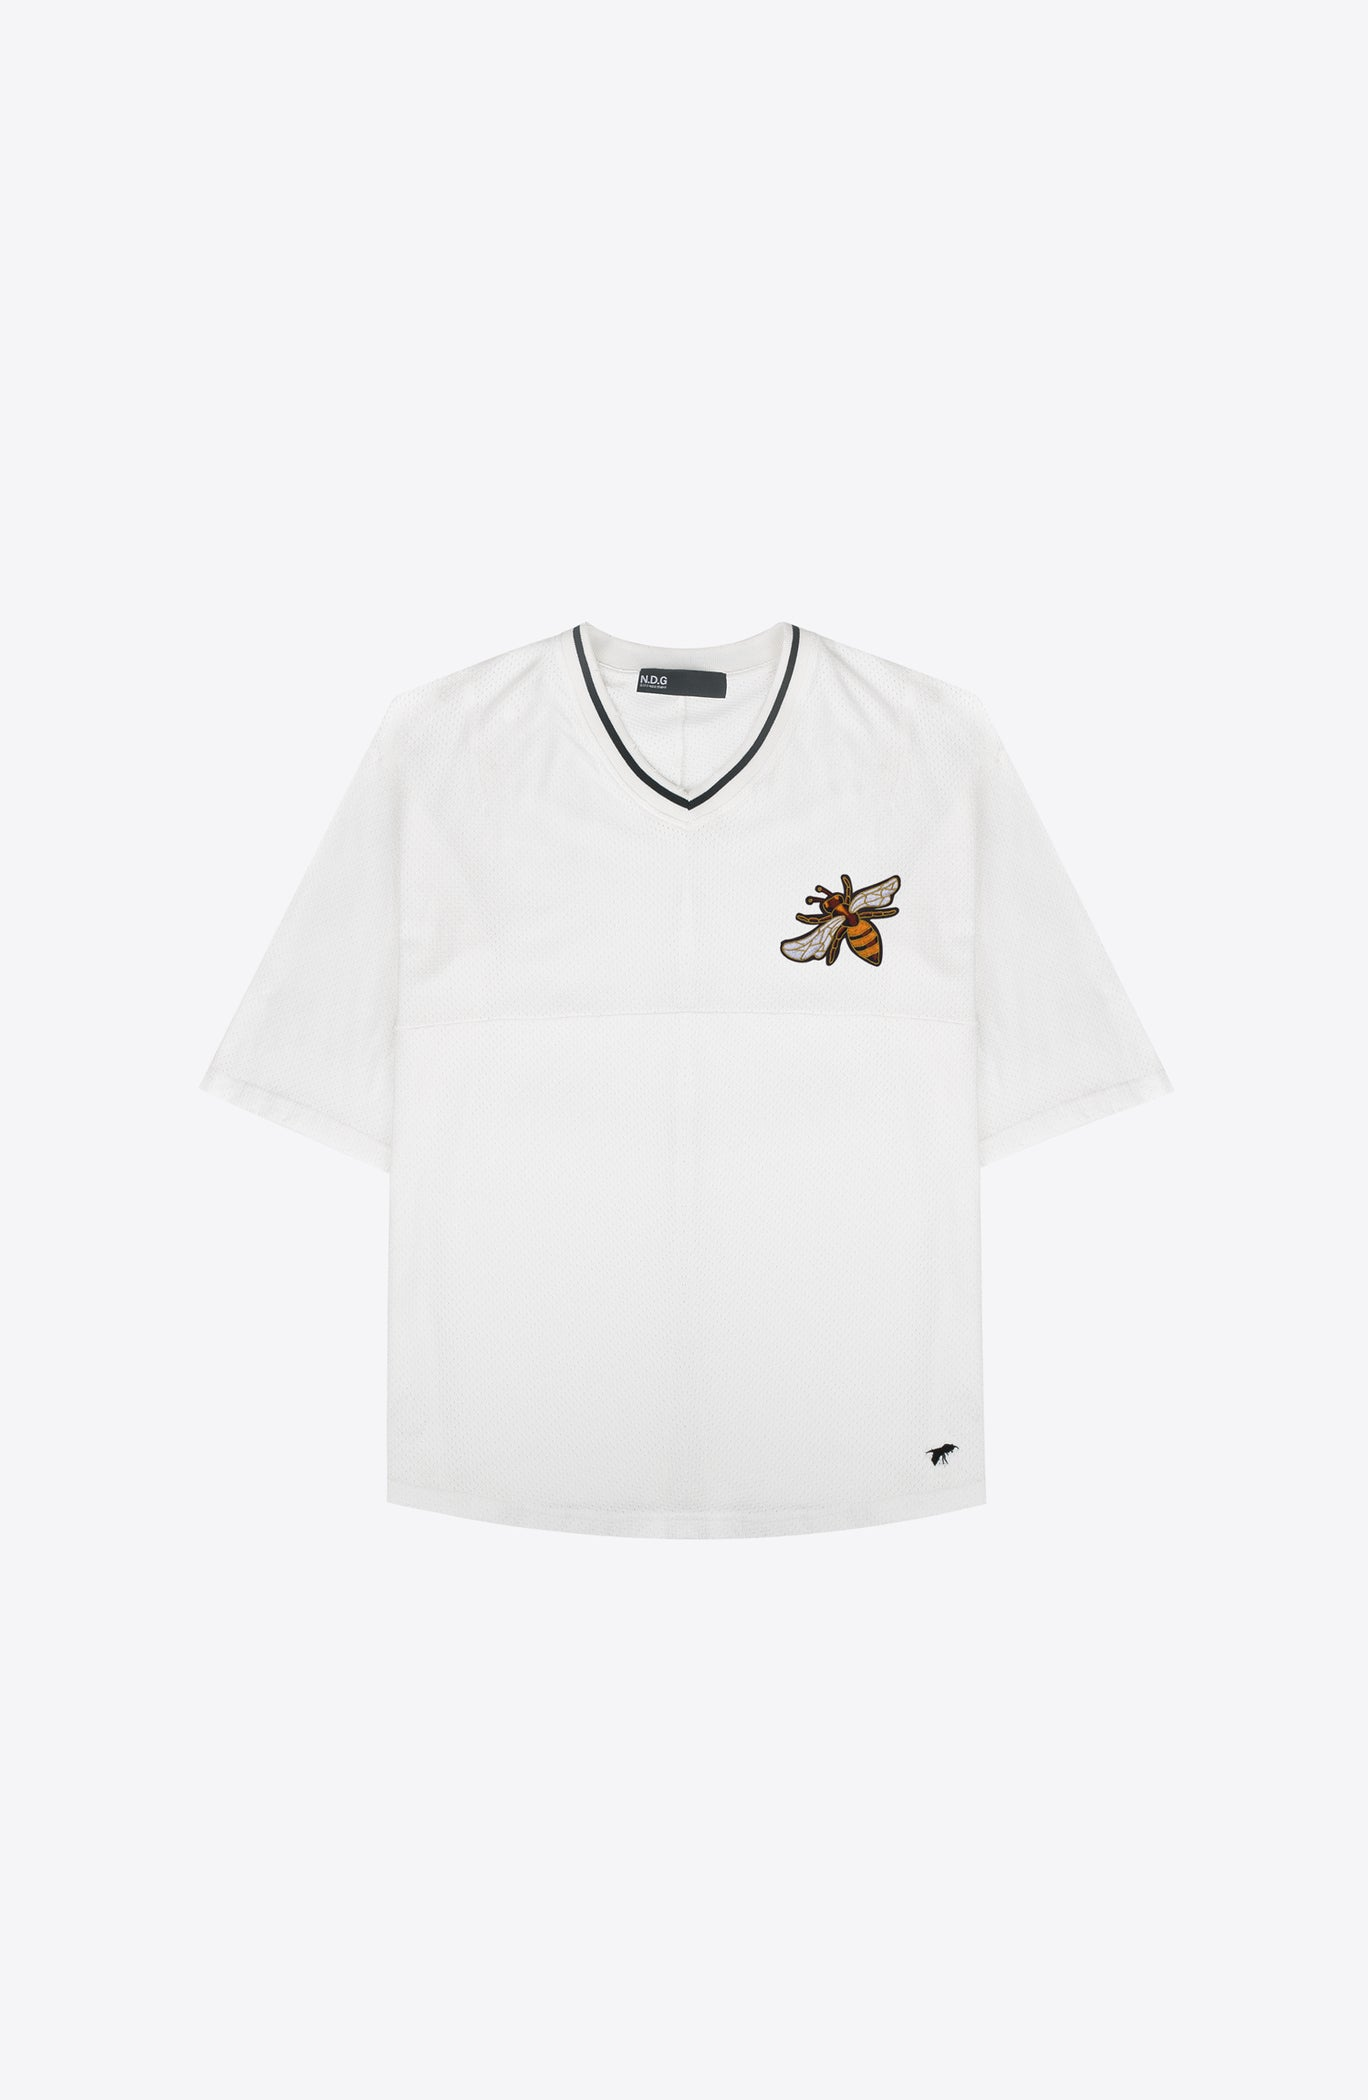 GUEPES WHITE HOCKEY TEE